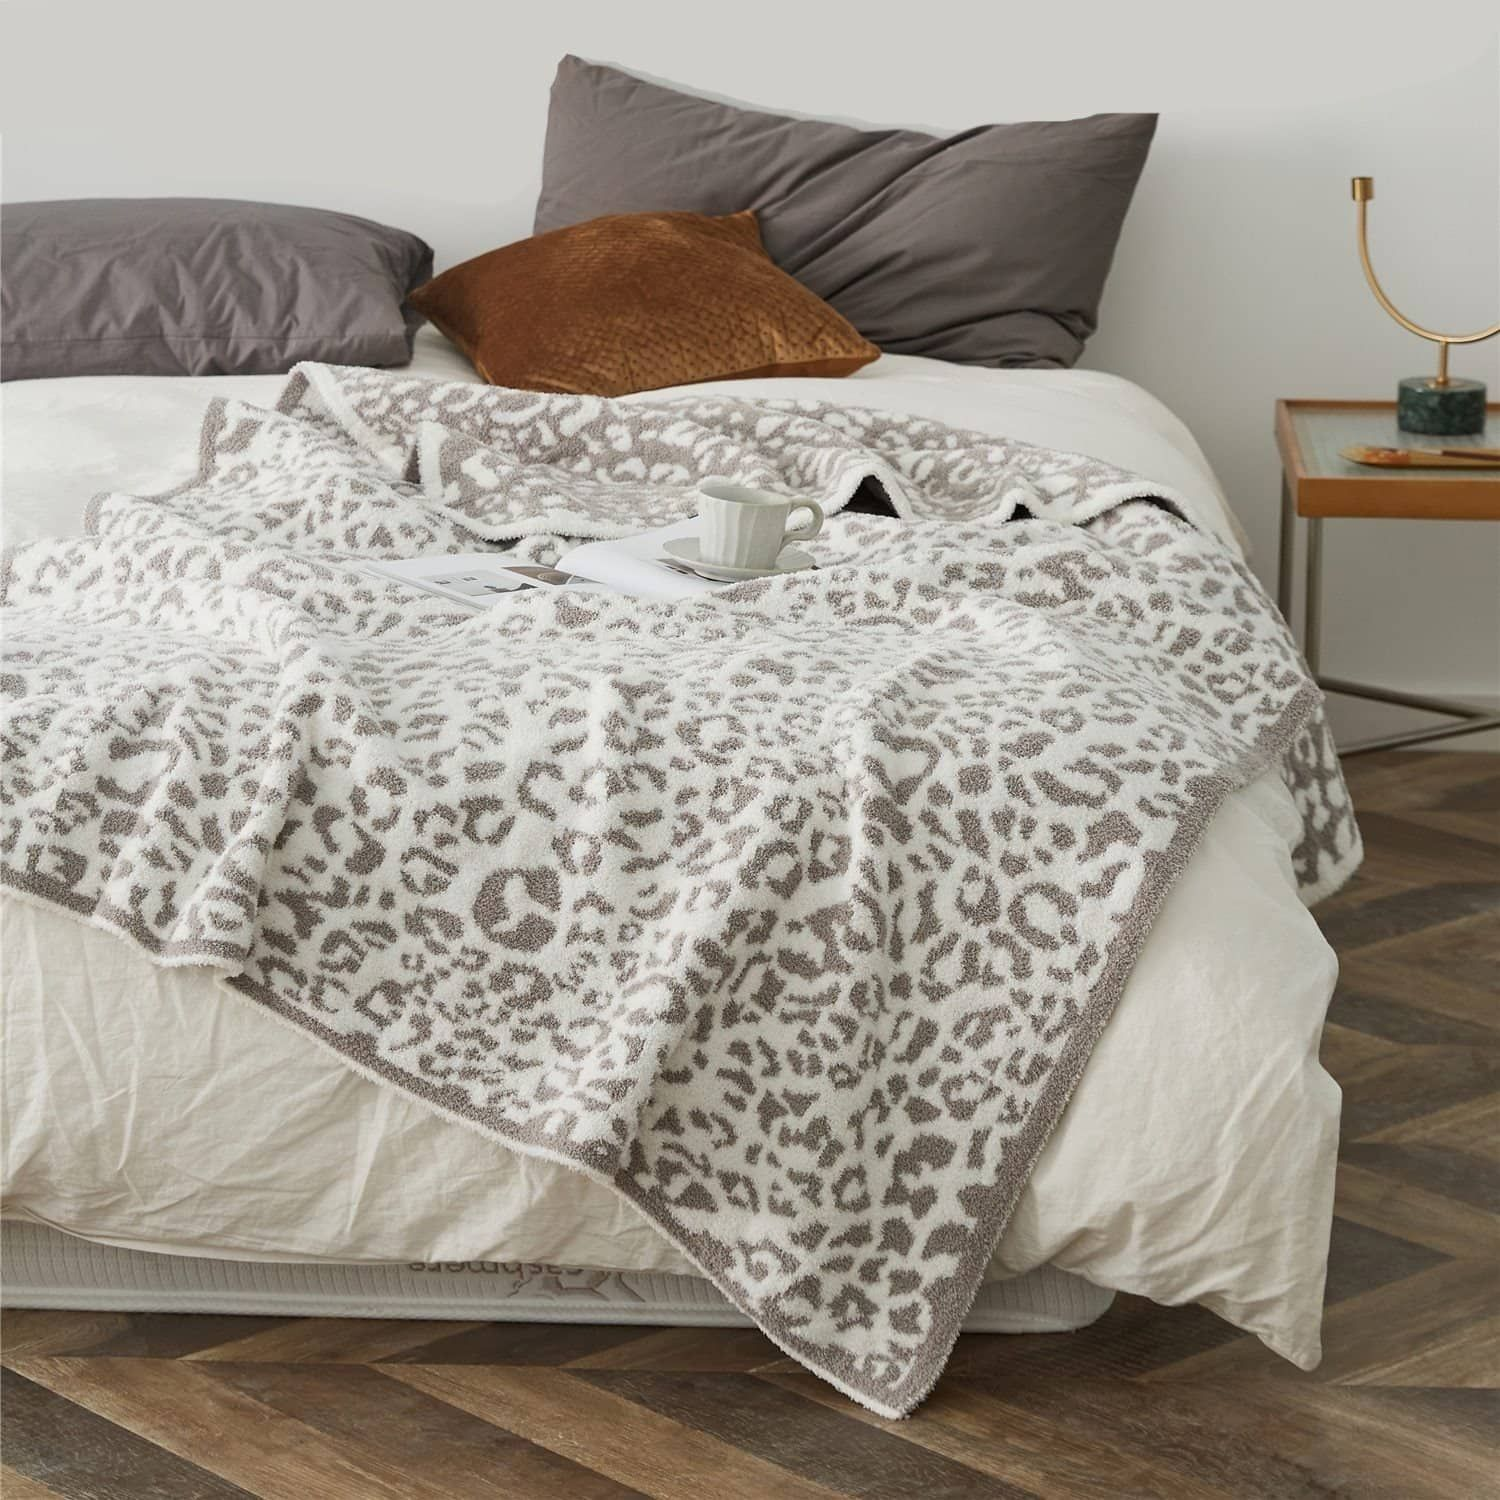 Faux Fur Microfiber Knitted Leopard Print Throw Blanket - Light gray-white